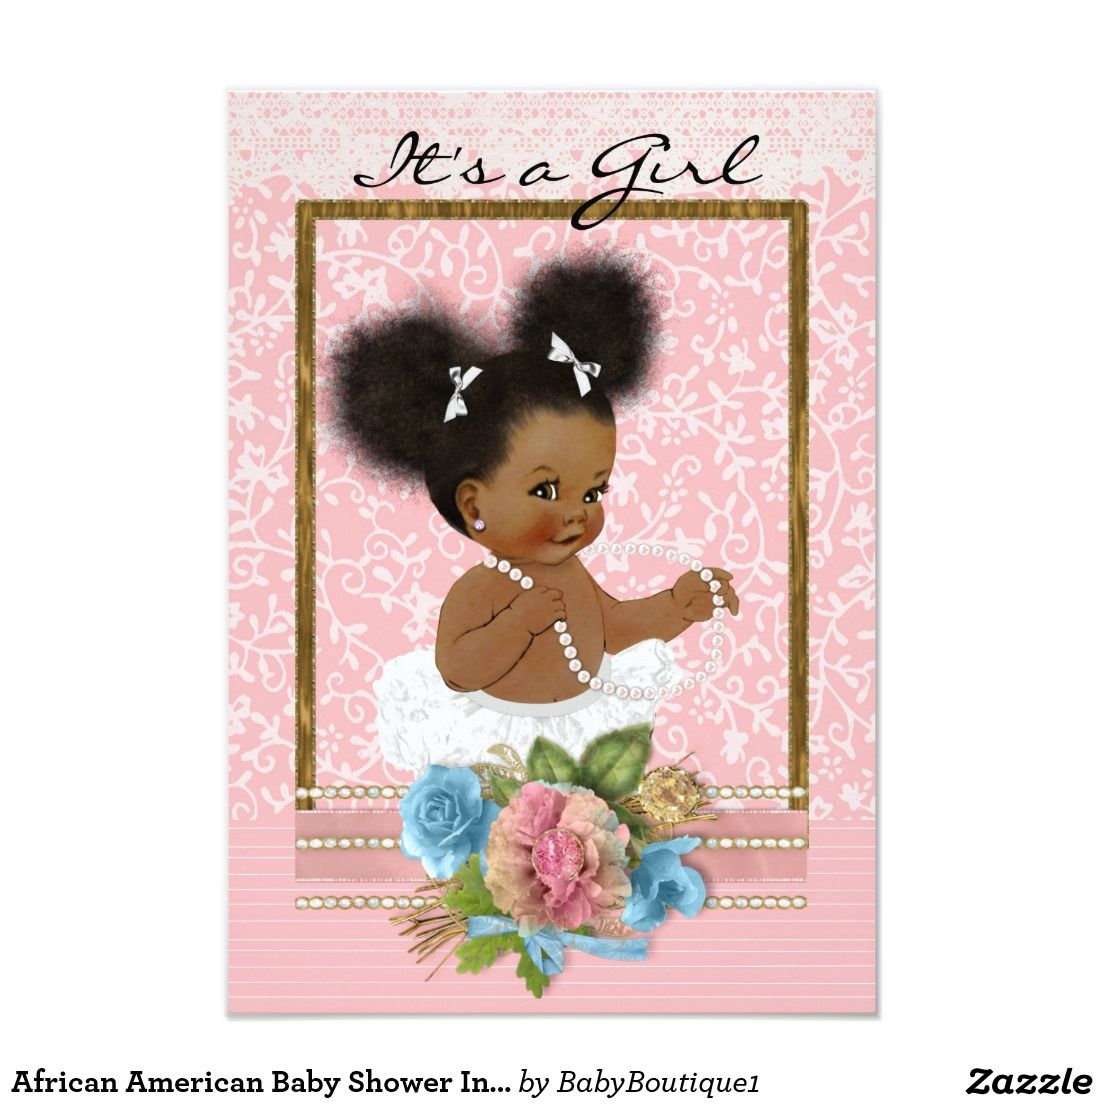 African American Baby Shower Invitation Zazzle Com In 2019 Baby